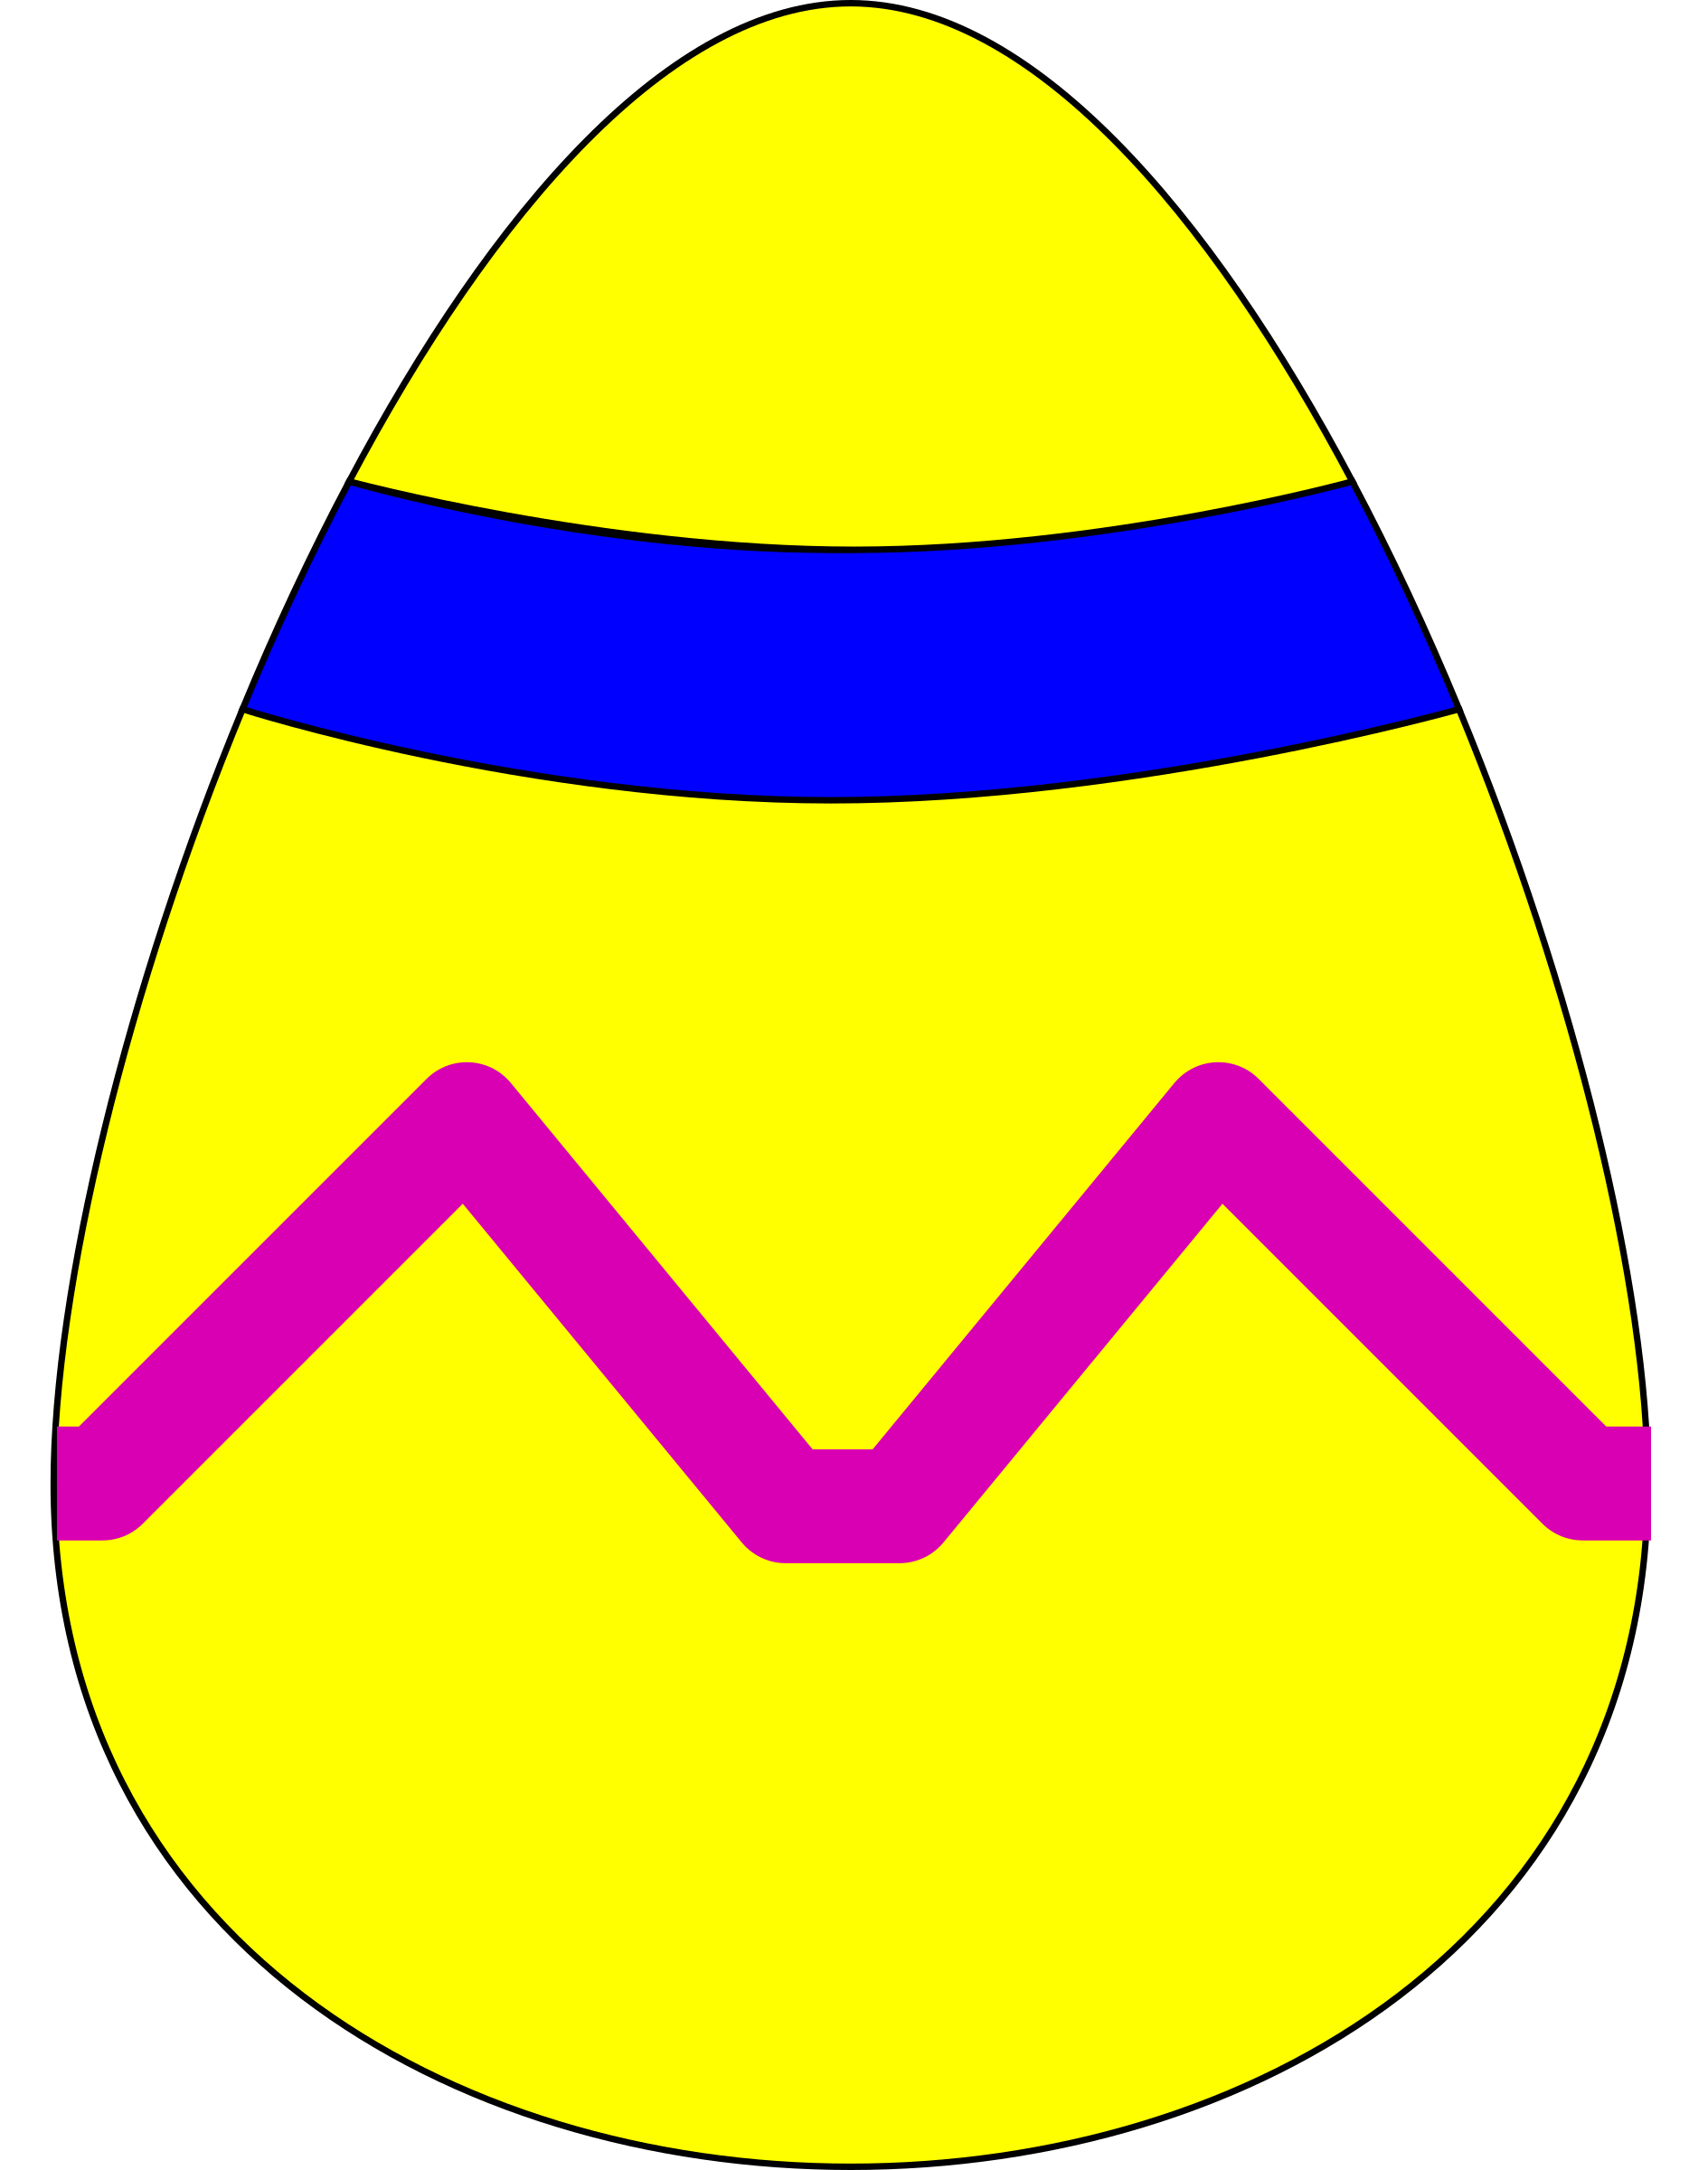 Easter Egg Yellow by skarg